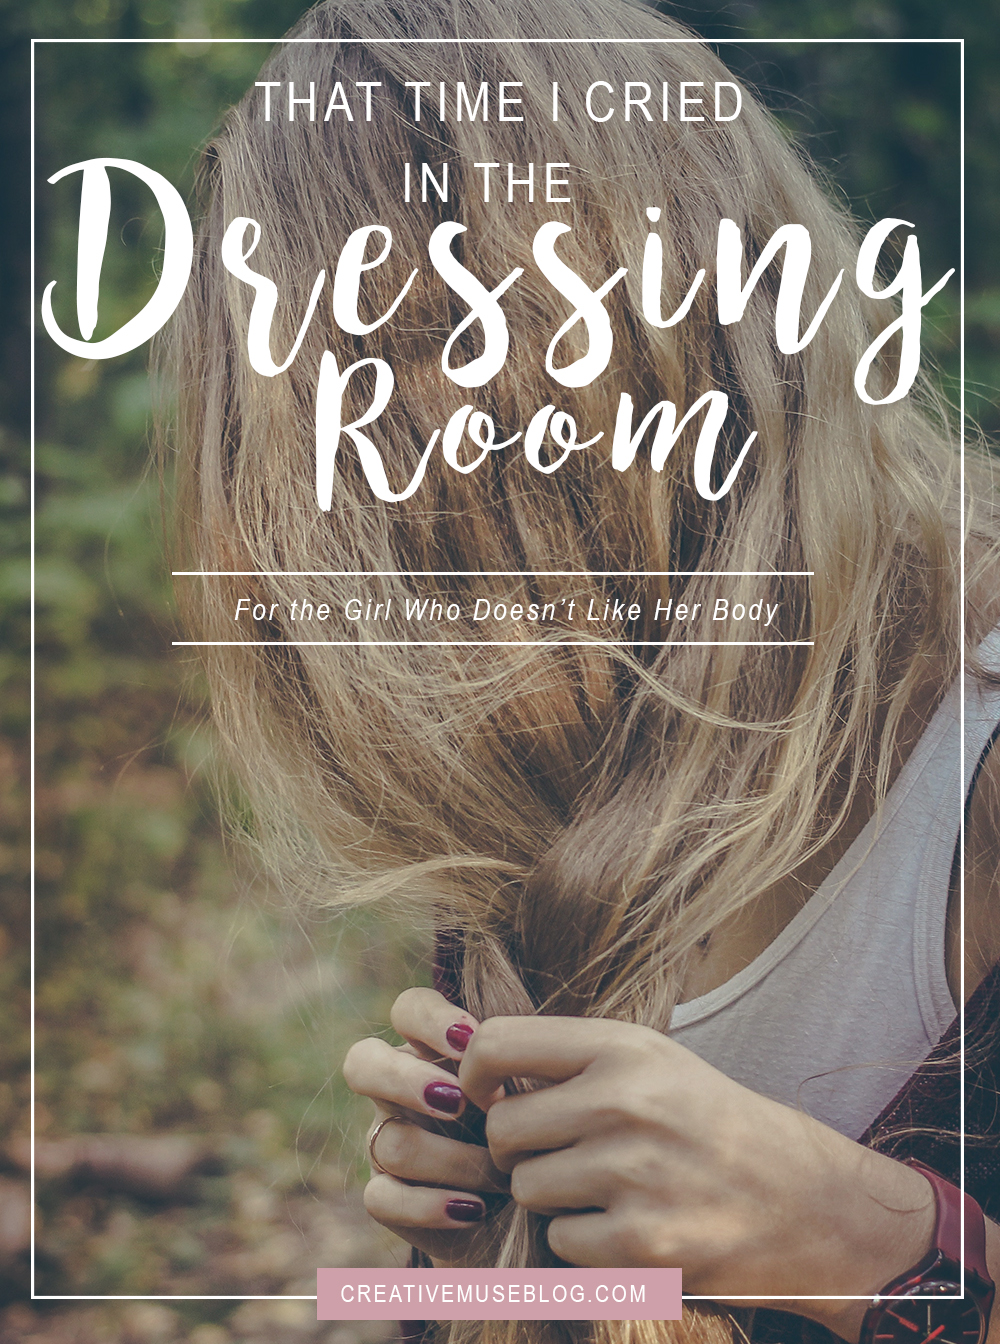 That Time I Cried in the Dressing Room // Body Image // Christian Girl Resources // Christian Girl Advice // Confidence // Love Your Body // Self-Esteem